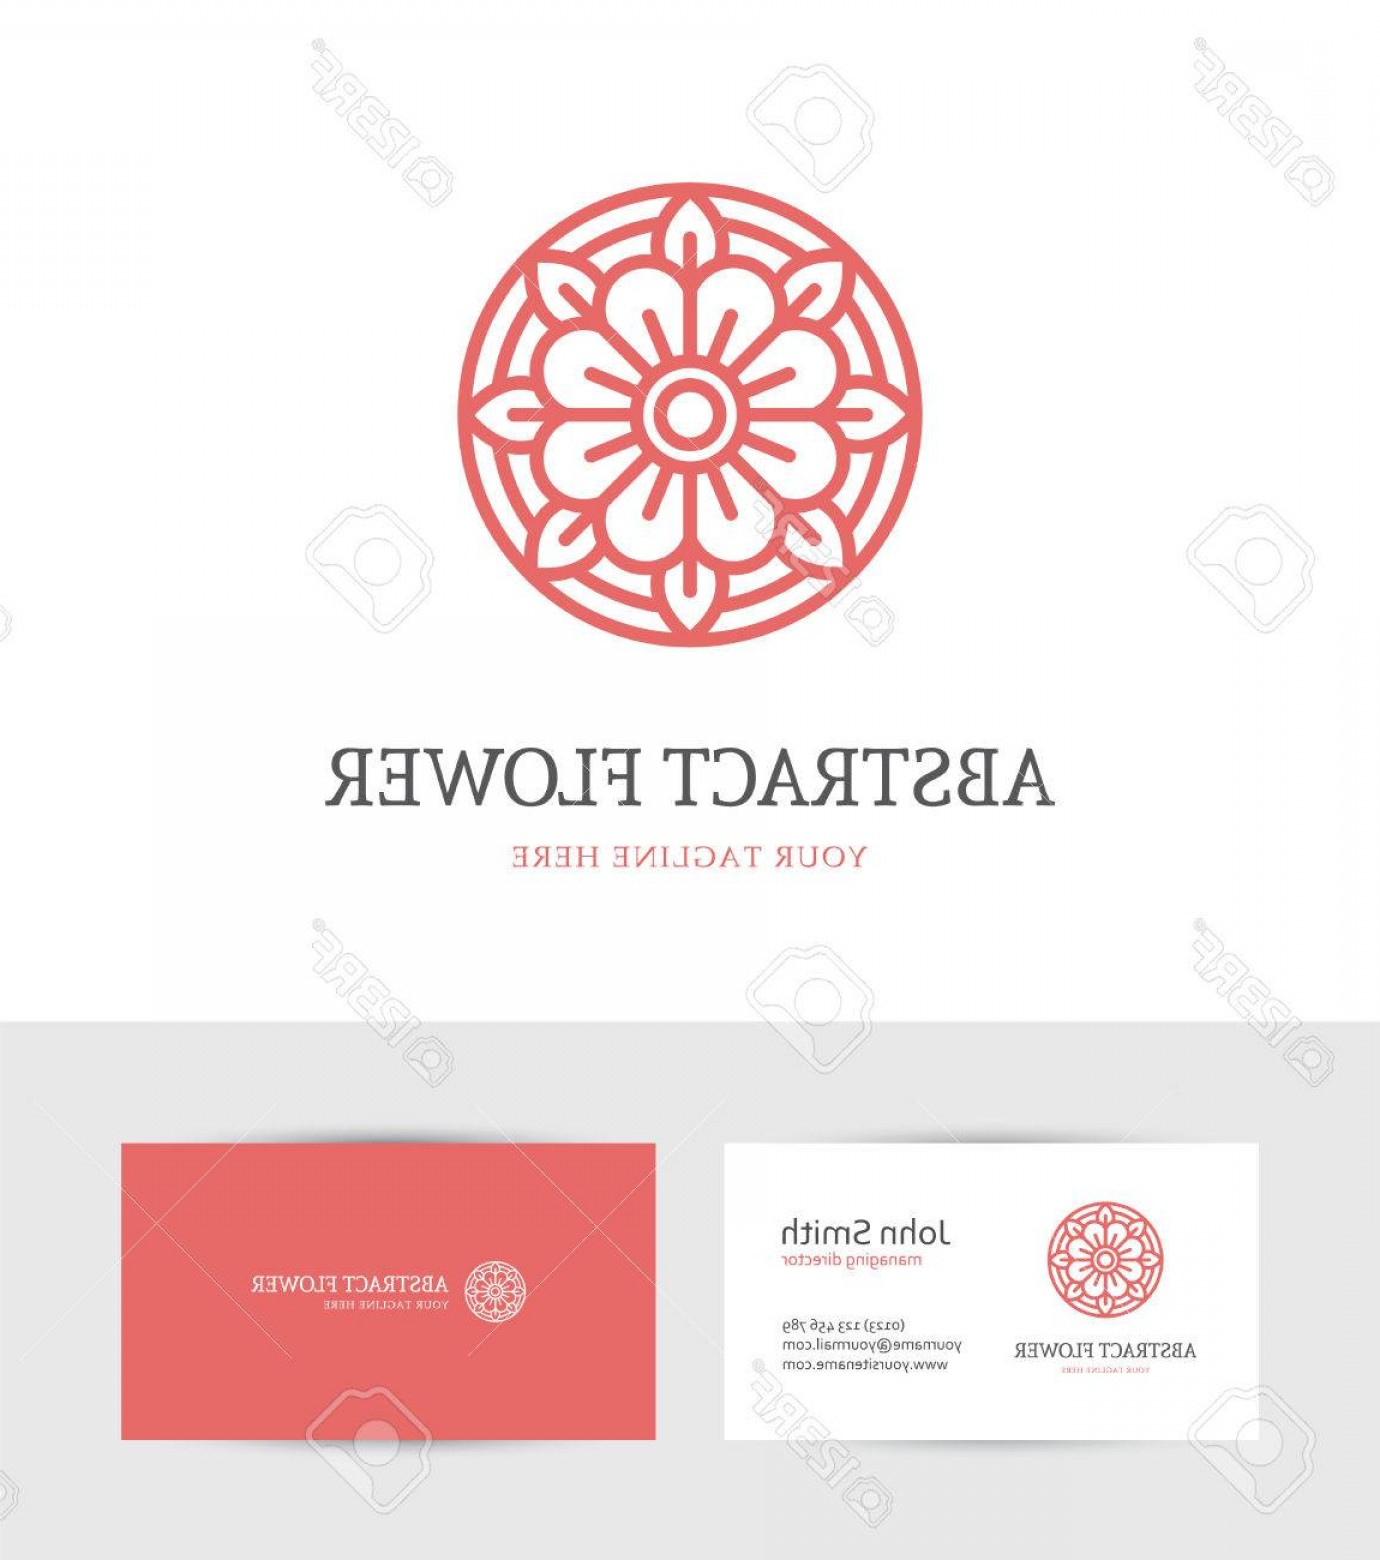 Modern Flower Logo Vector: Photostock Vector Modern Abstract Linear Red Flower Logo And Business Card Design Template For Beauty Salon Spa Or Cos